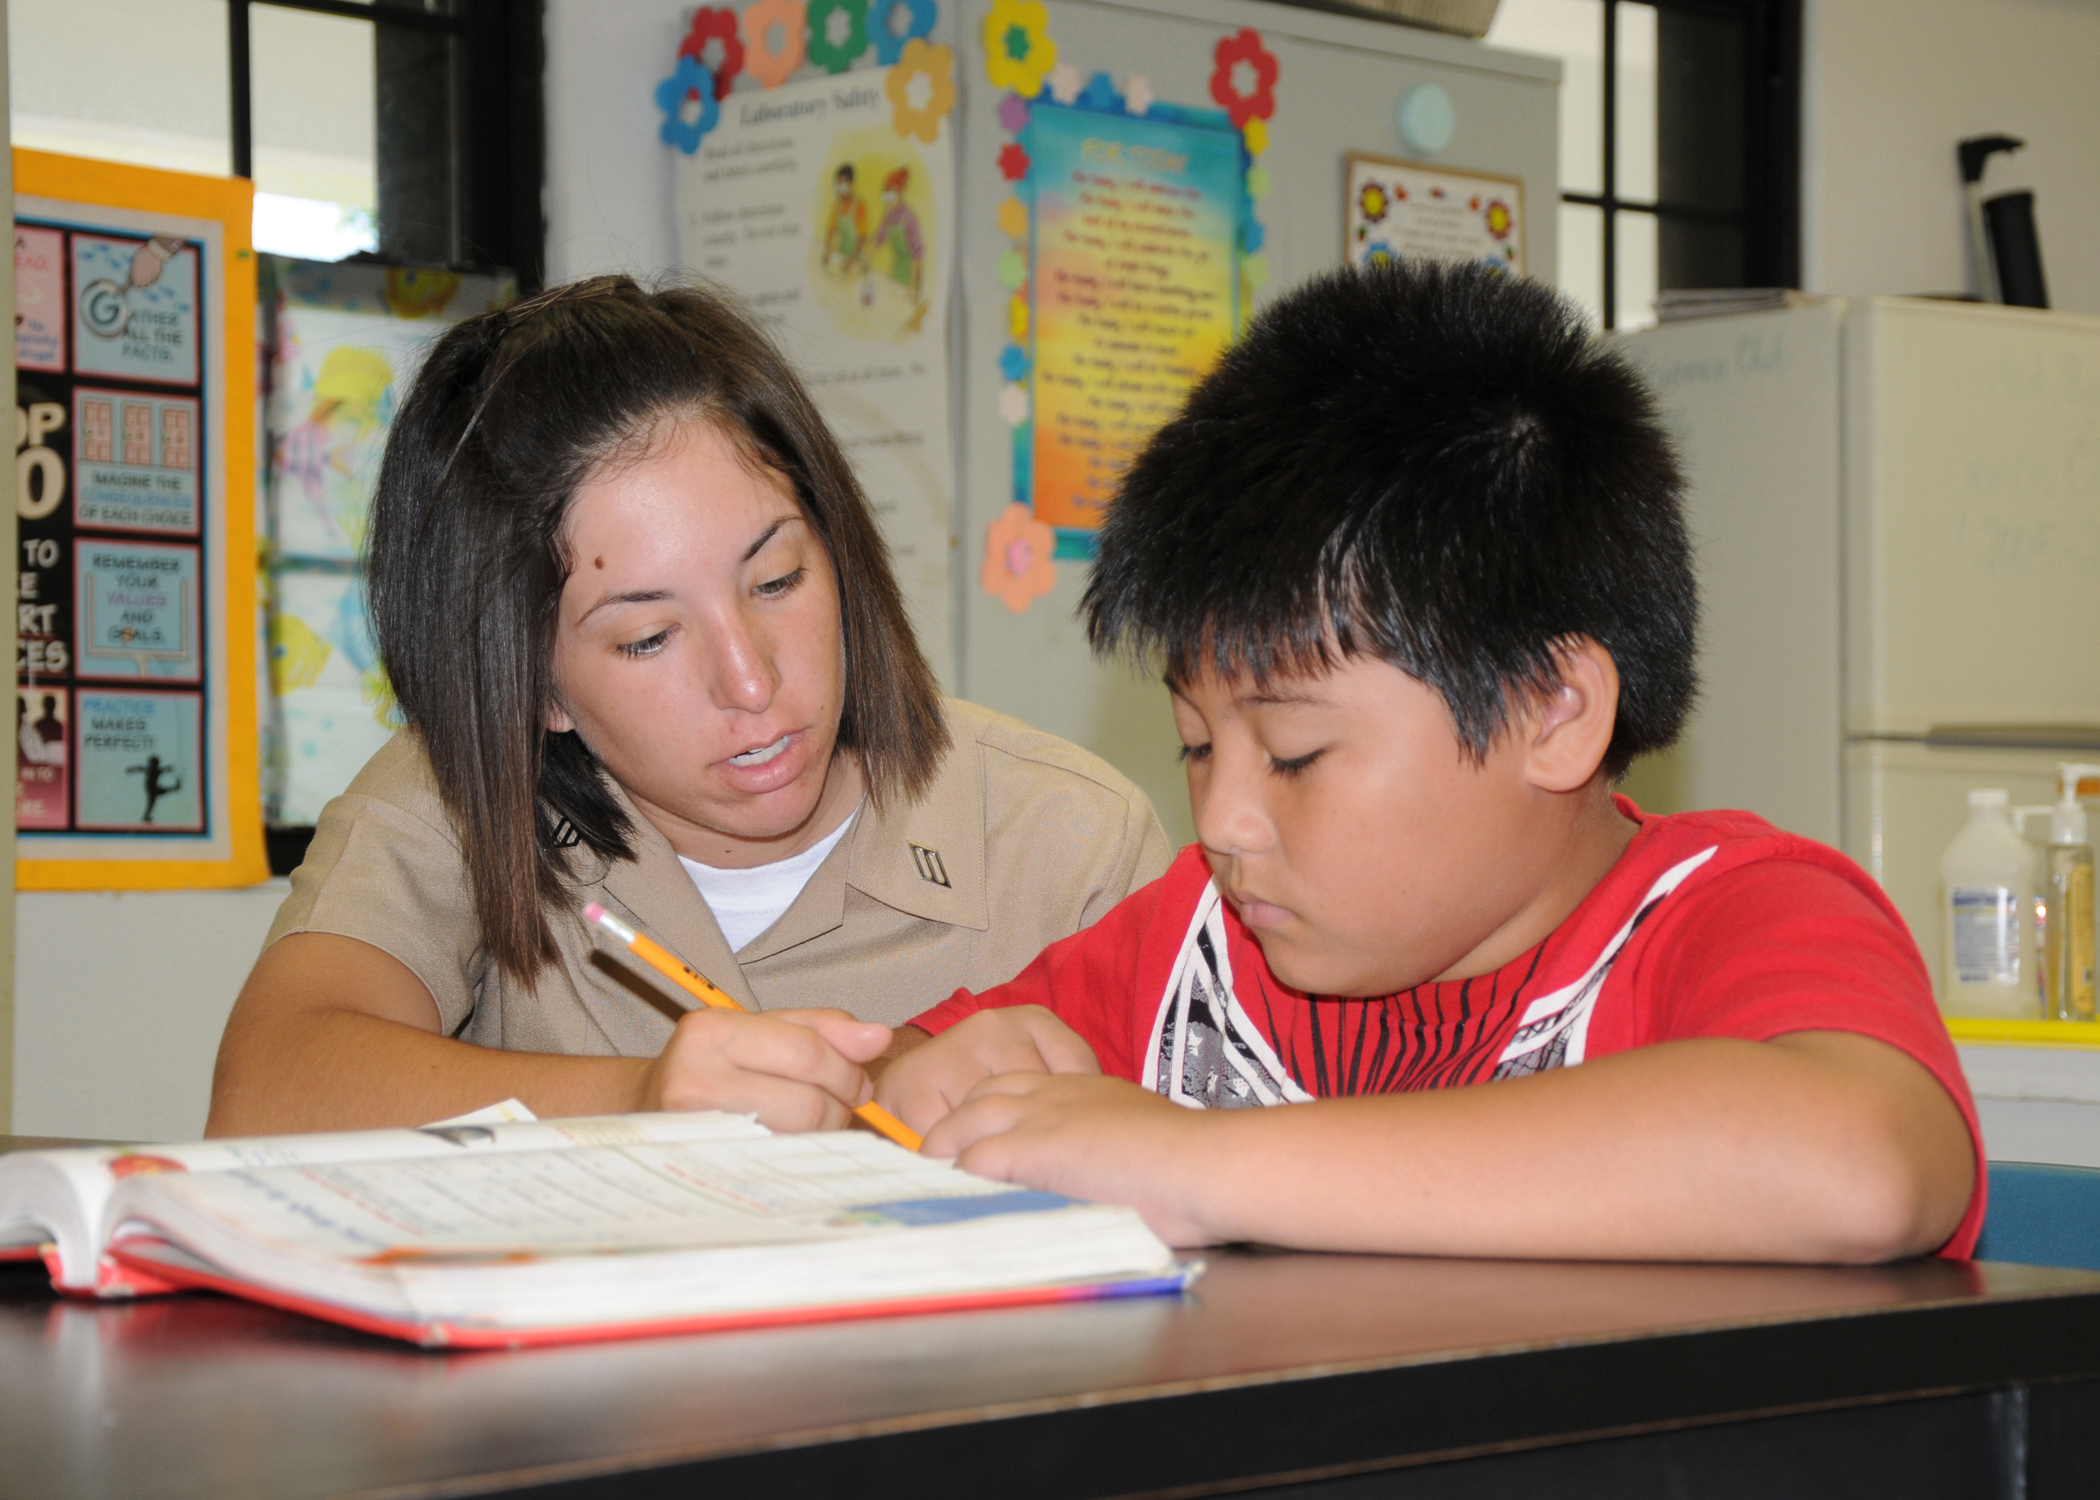 In-Home Private Tutoring Can Help Your Child Improve Grades